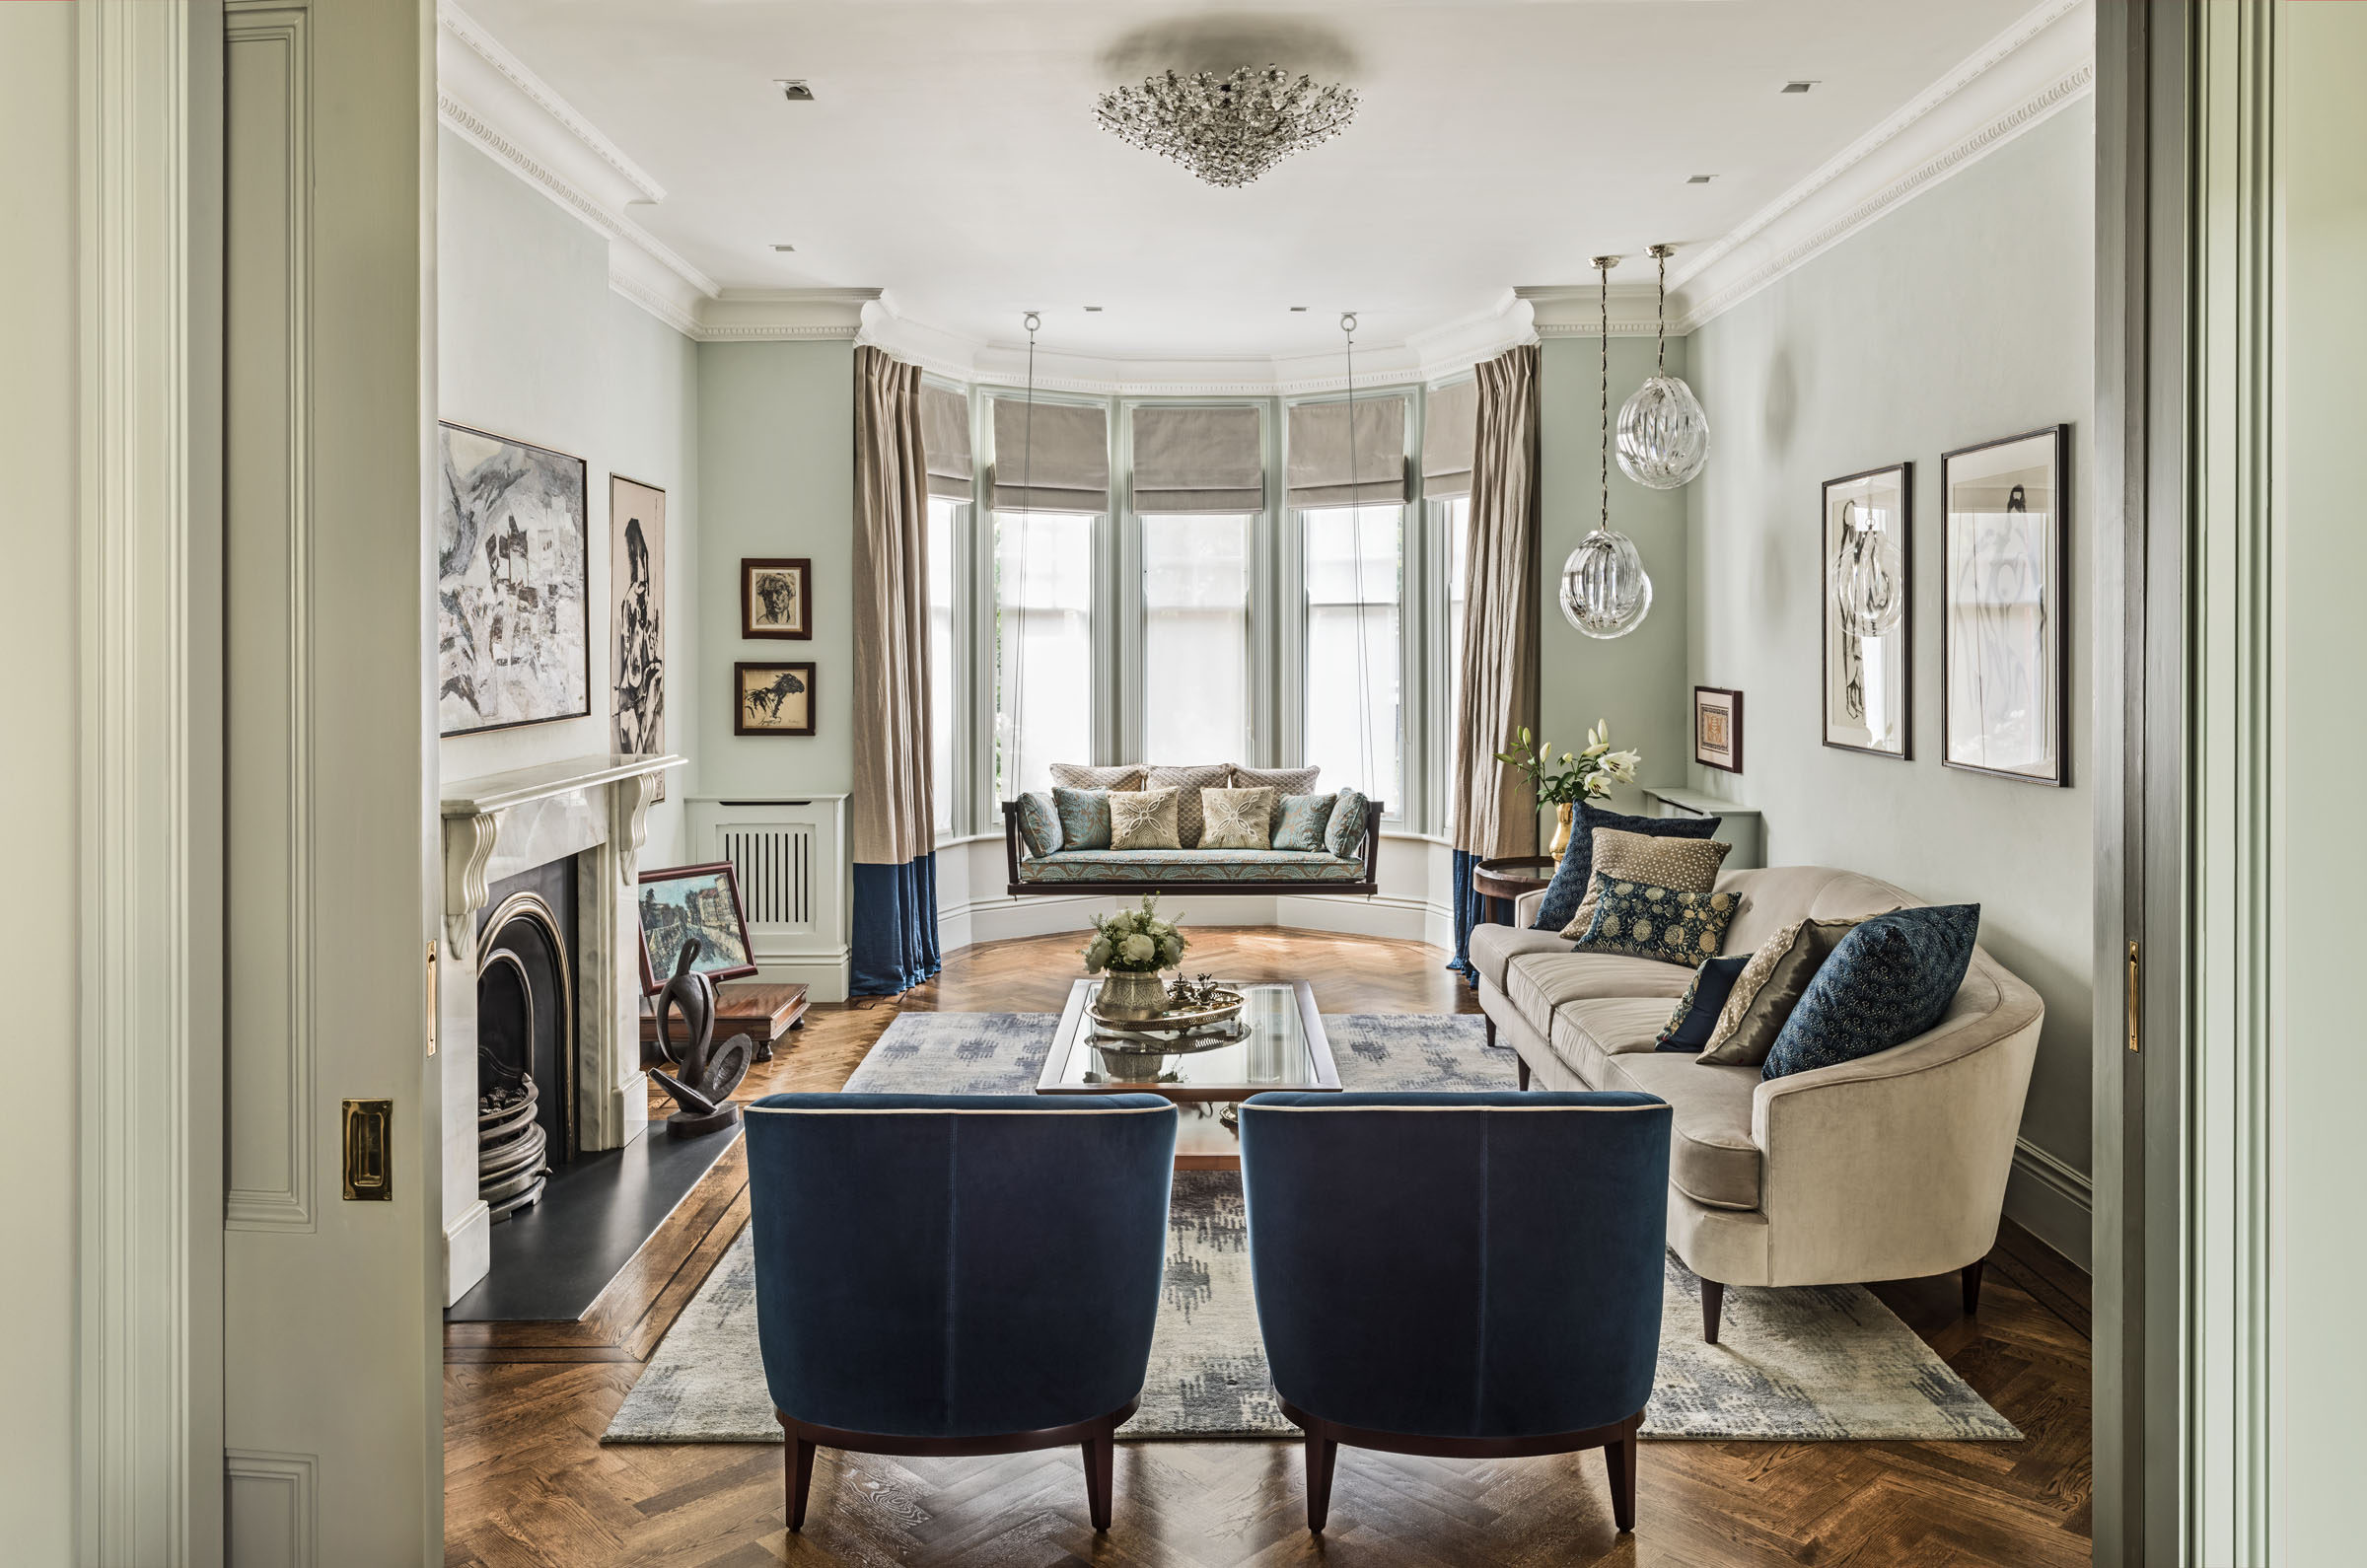 South hampstead house london luxury interior design for Front room interior design